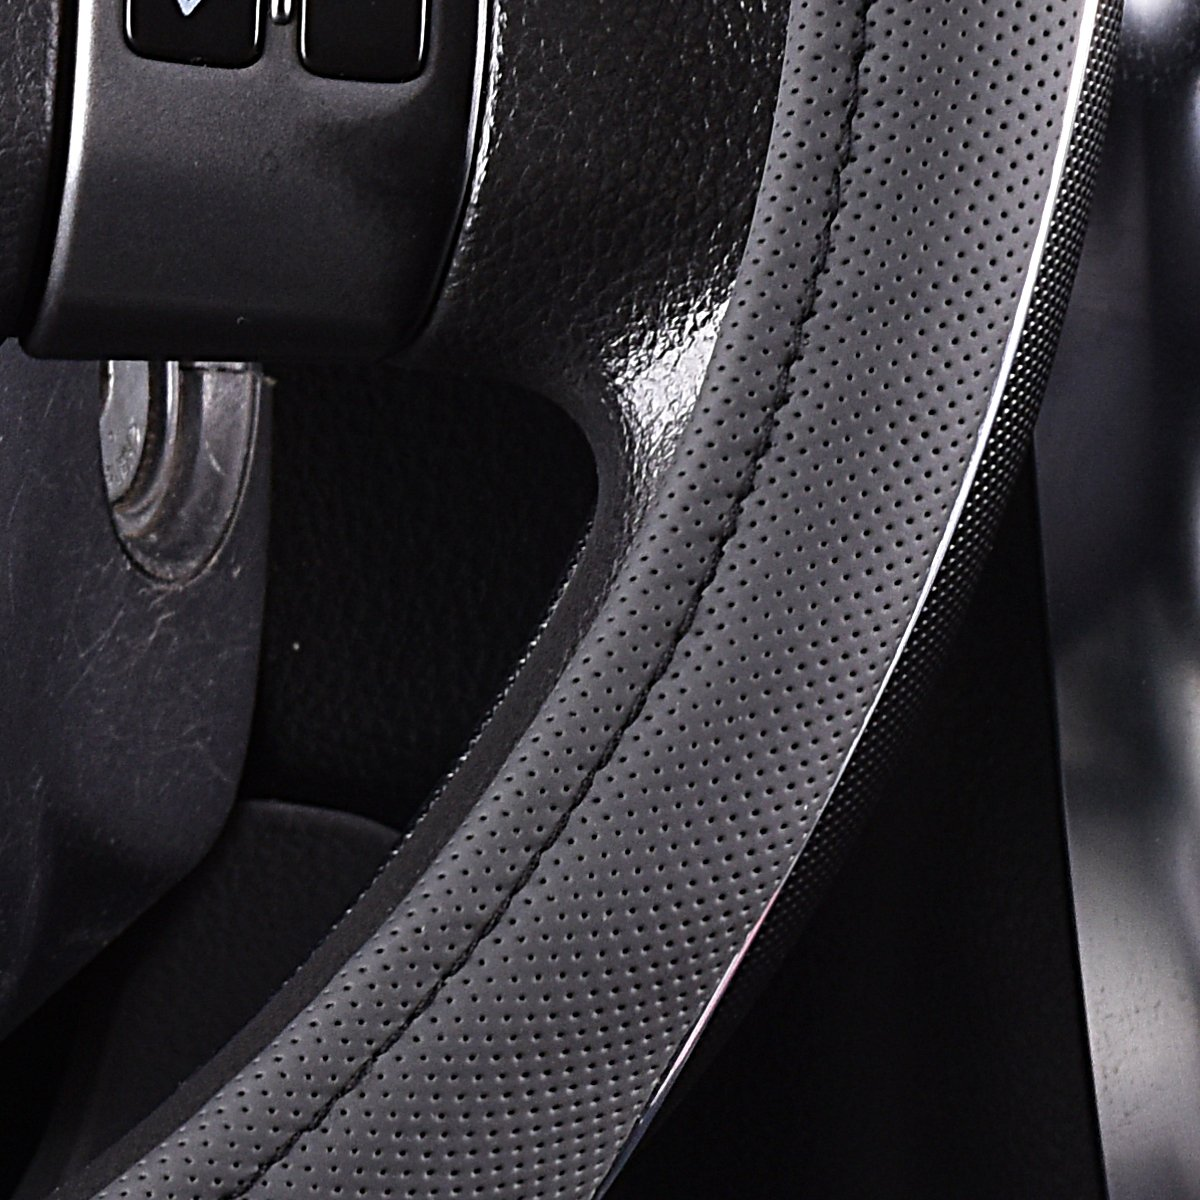 CAR PASS PVC Leather Rainbow Universal Fit Steering Wheel Cover/£/¨Gray/£/©